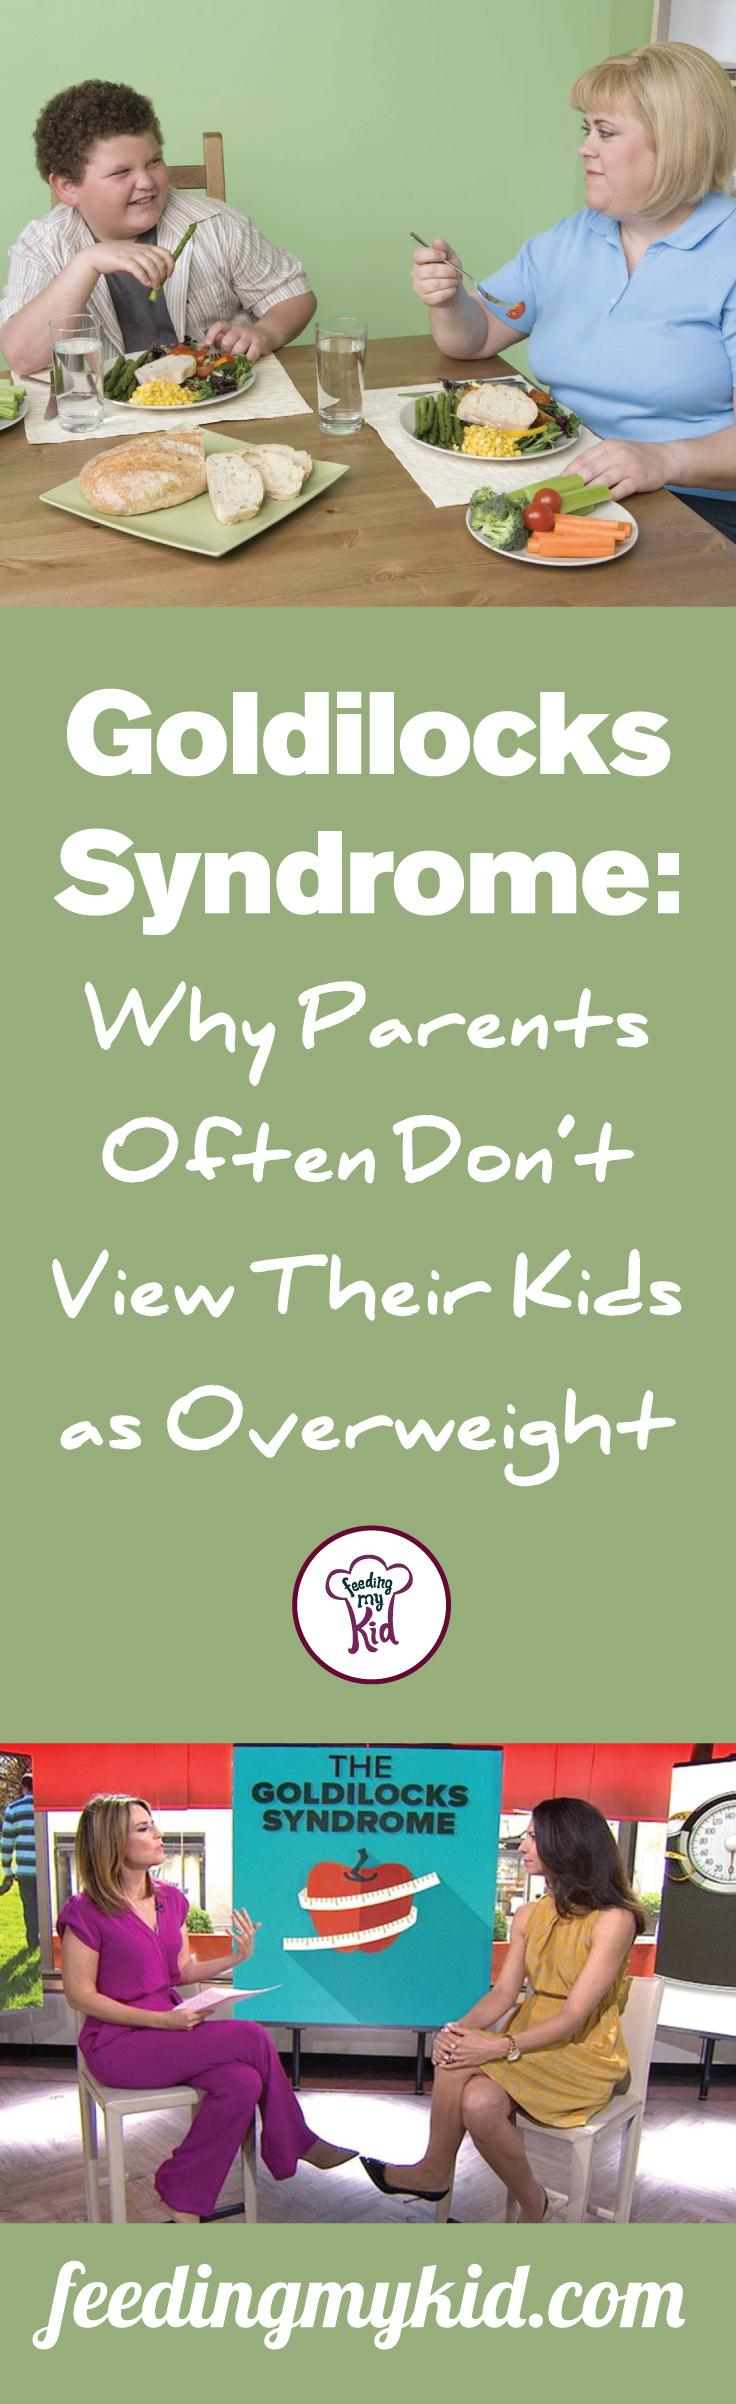 Goldilocks syndrome: Why Parents Often Don't View Their Kids as Overweight - The truth is, one-third of children in this country are overweight, which is making it difficult for parents to judge their appearance based on that of their peers'. In fact, 95% of parents cannot tell if their kid is overweight. As parents we are sometimes blind to our children's impurities. Every wrinkle, dimple and bulging belly is cherished and loved.